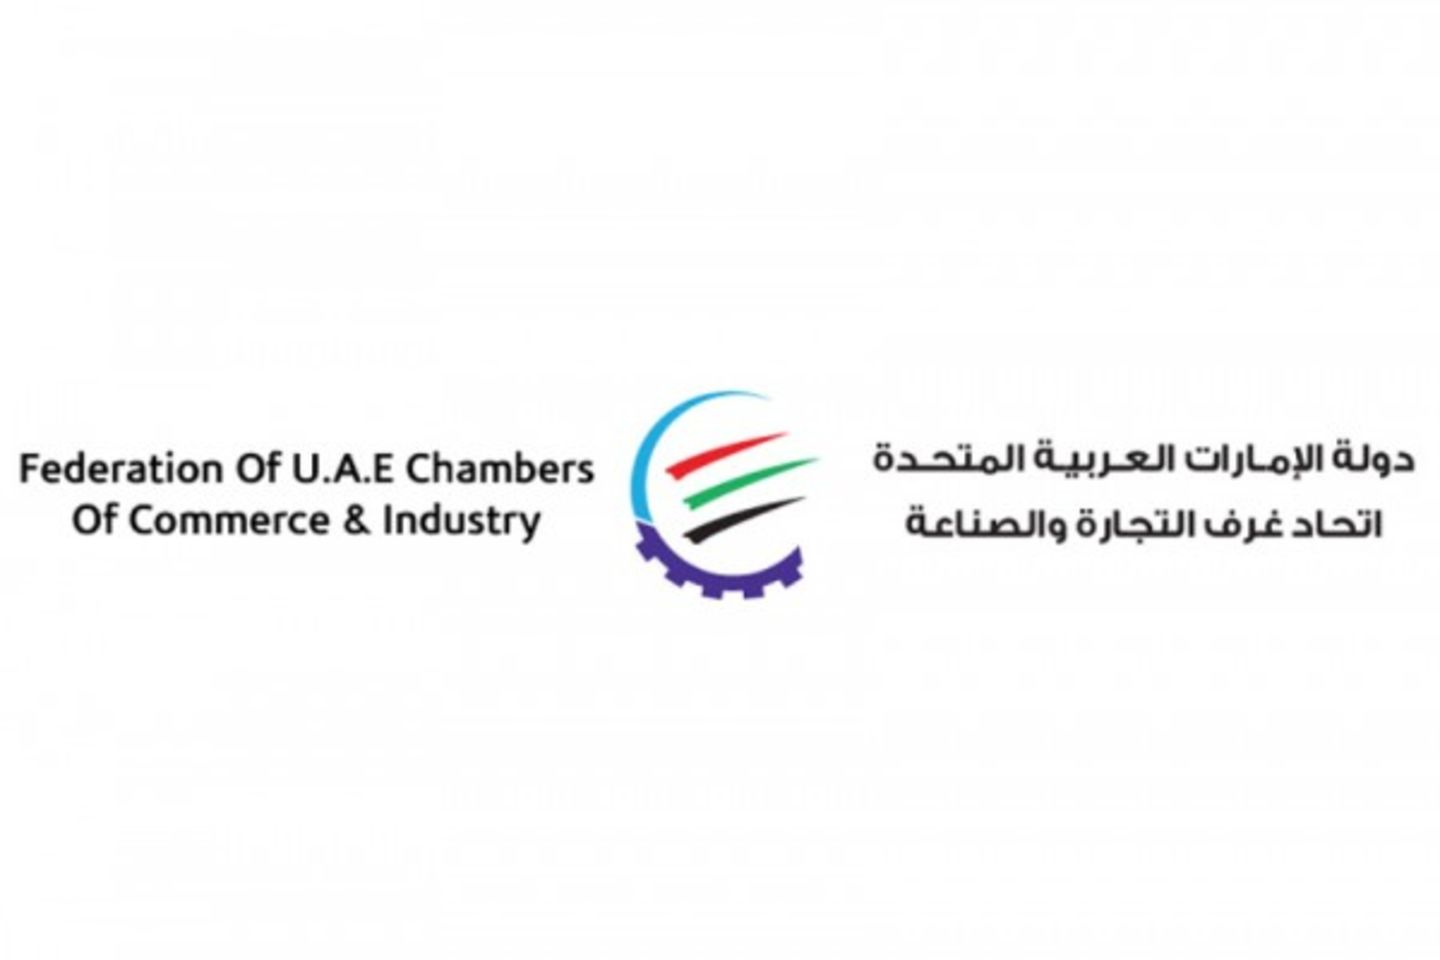 HiDubai-business-federation-of-uae-chamber-of-commerce-industry-government-public-services-government-offices-al-mamzar-dubai-2